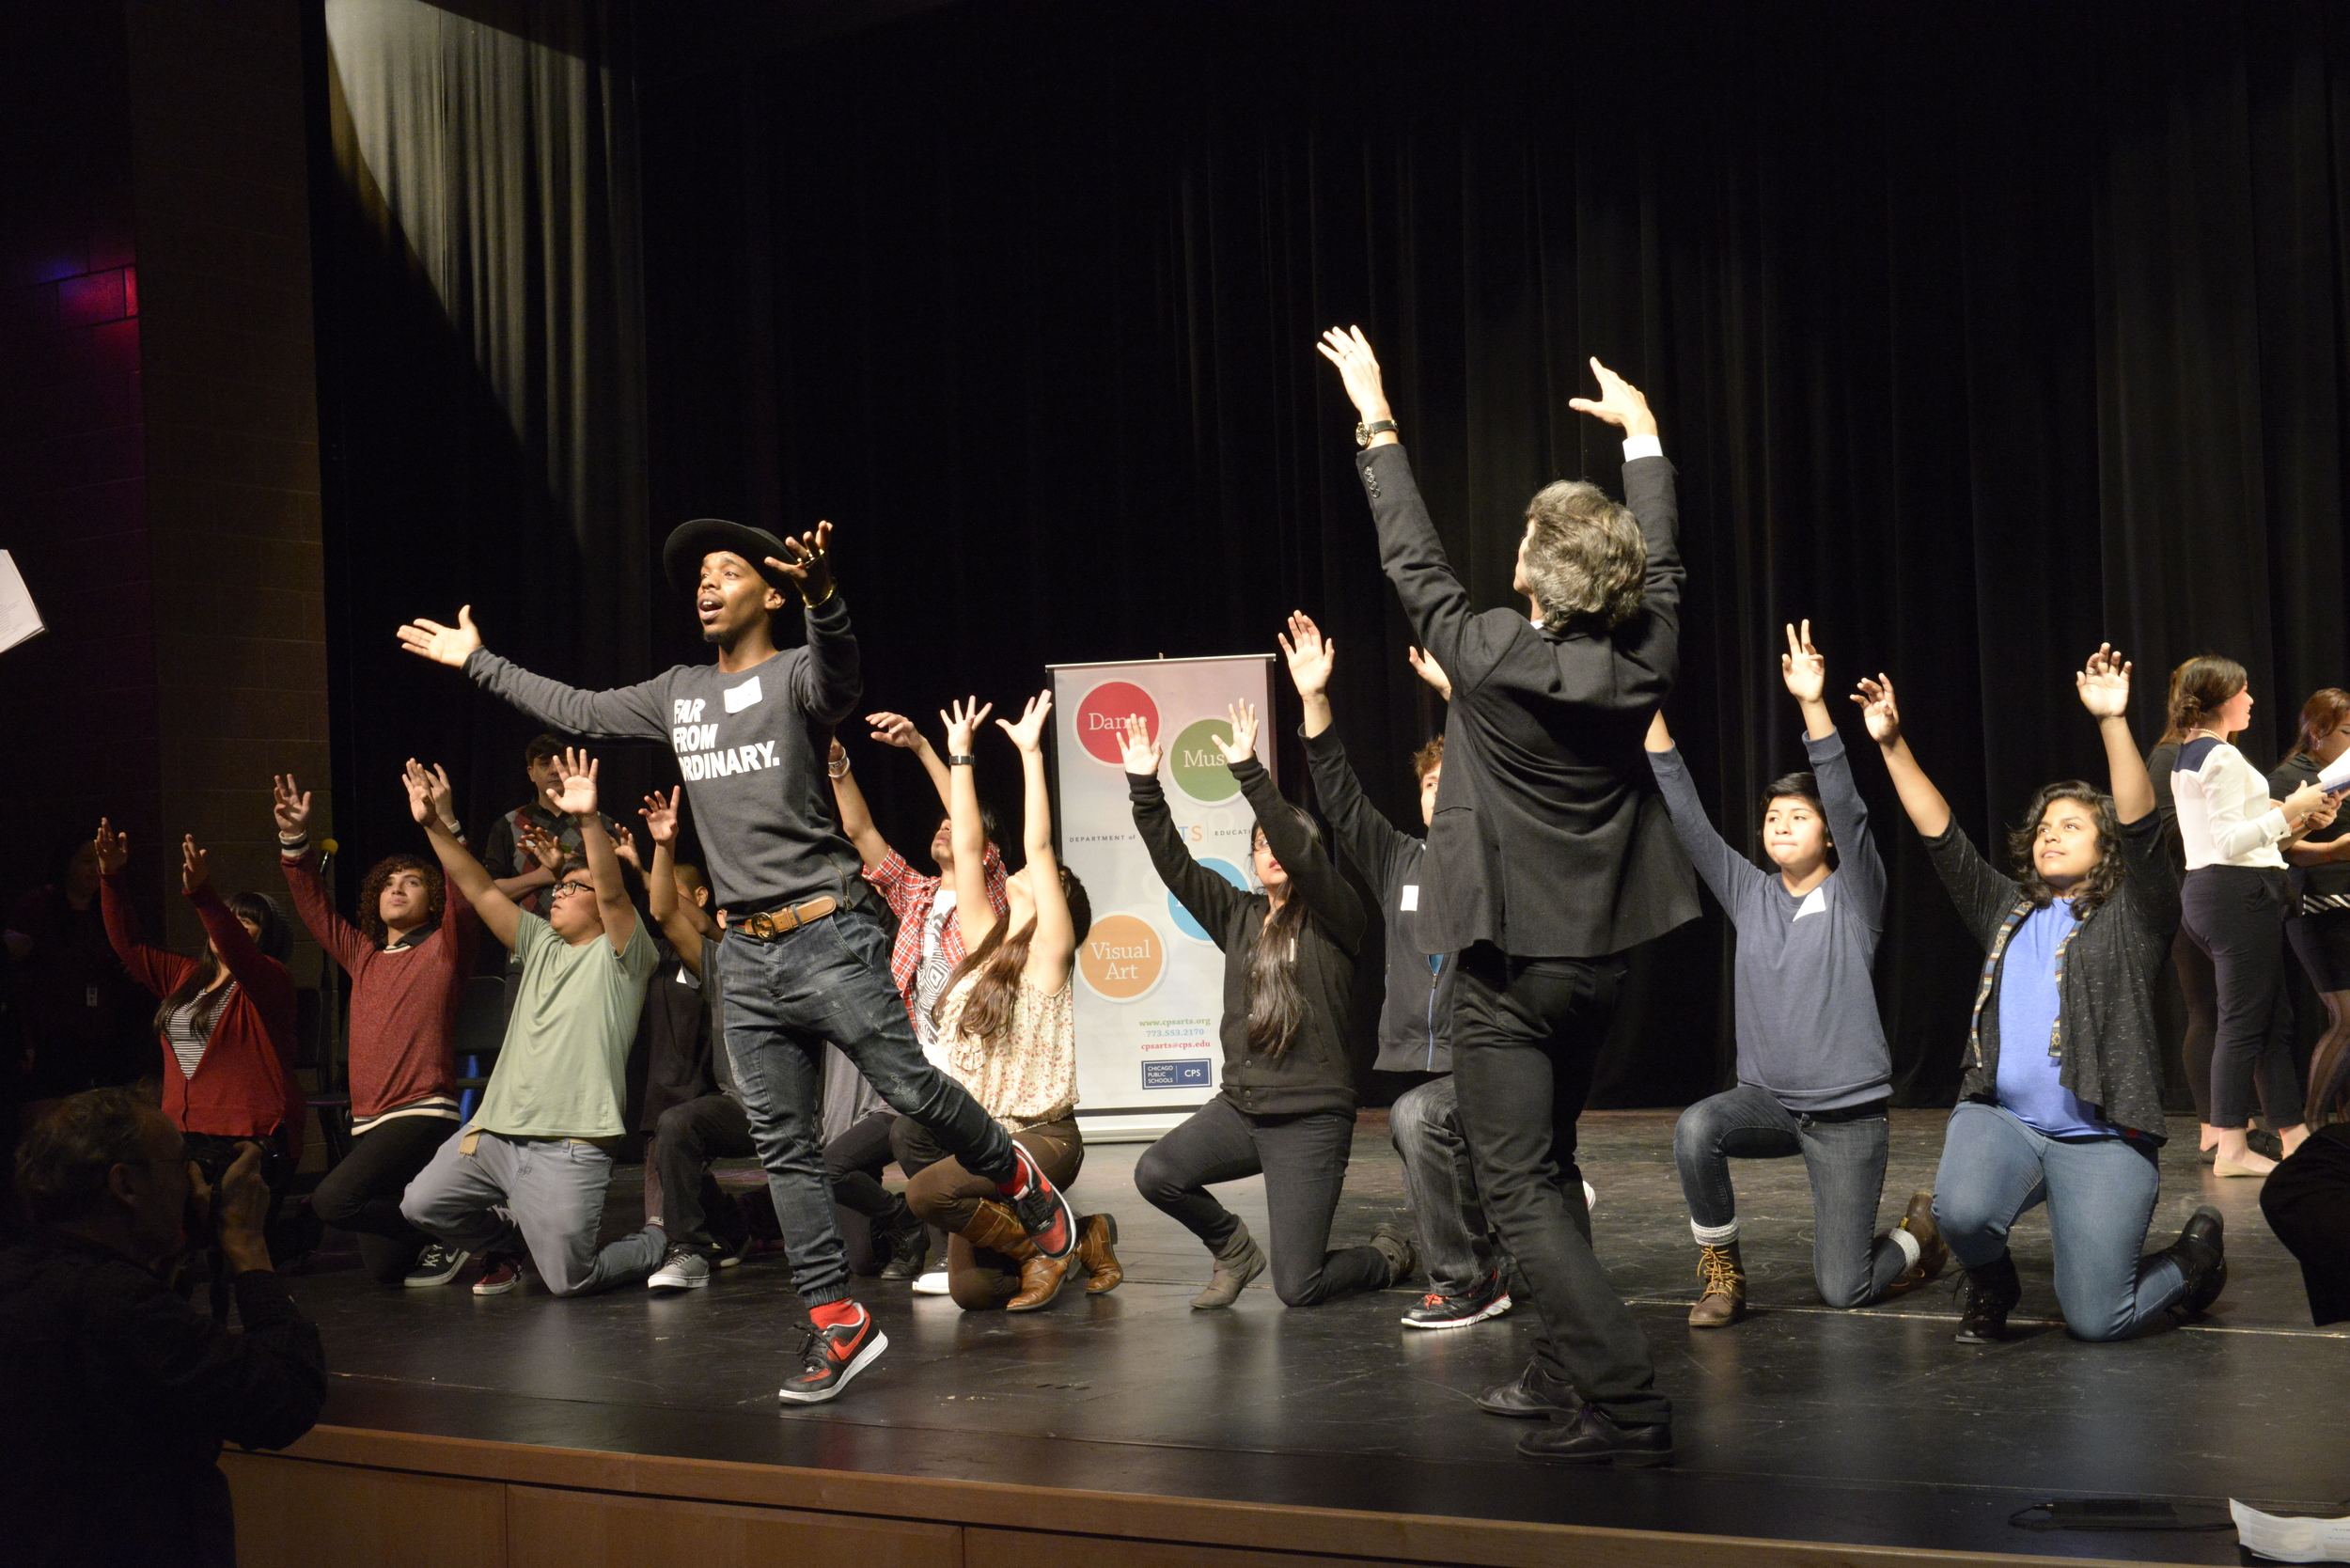 Drama students of Benito Juarez Community Academy are joined onstage by Damian Woetzel and Lil Buck